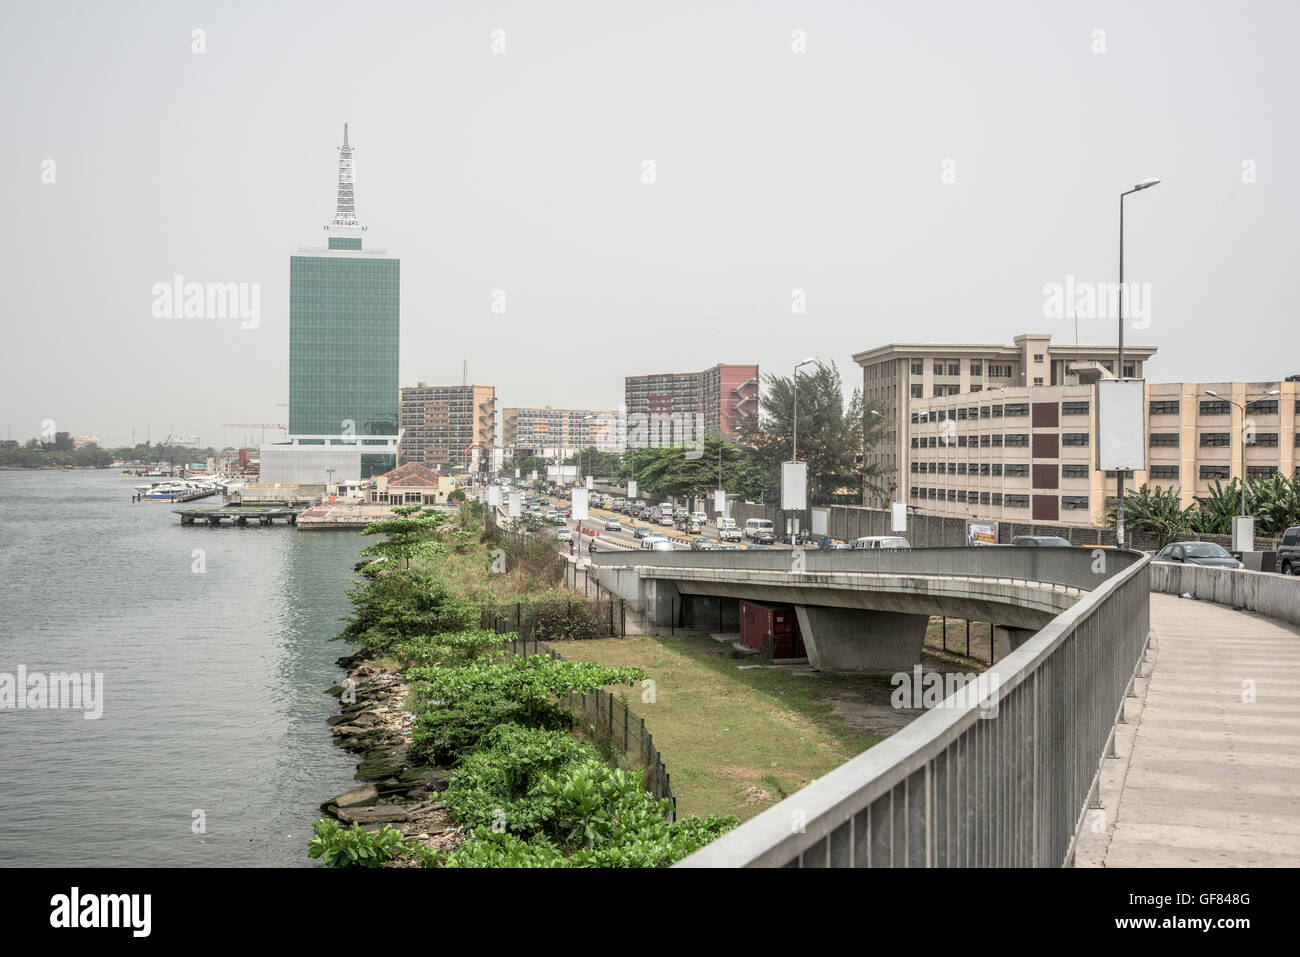 Victoria Island and lagoon from Falomo Bridge, Lagos, Nigeria - Stock Image